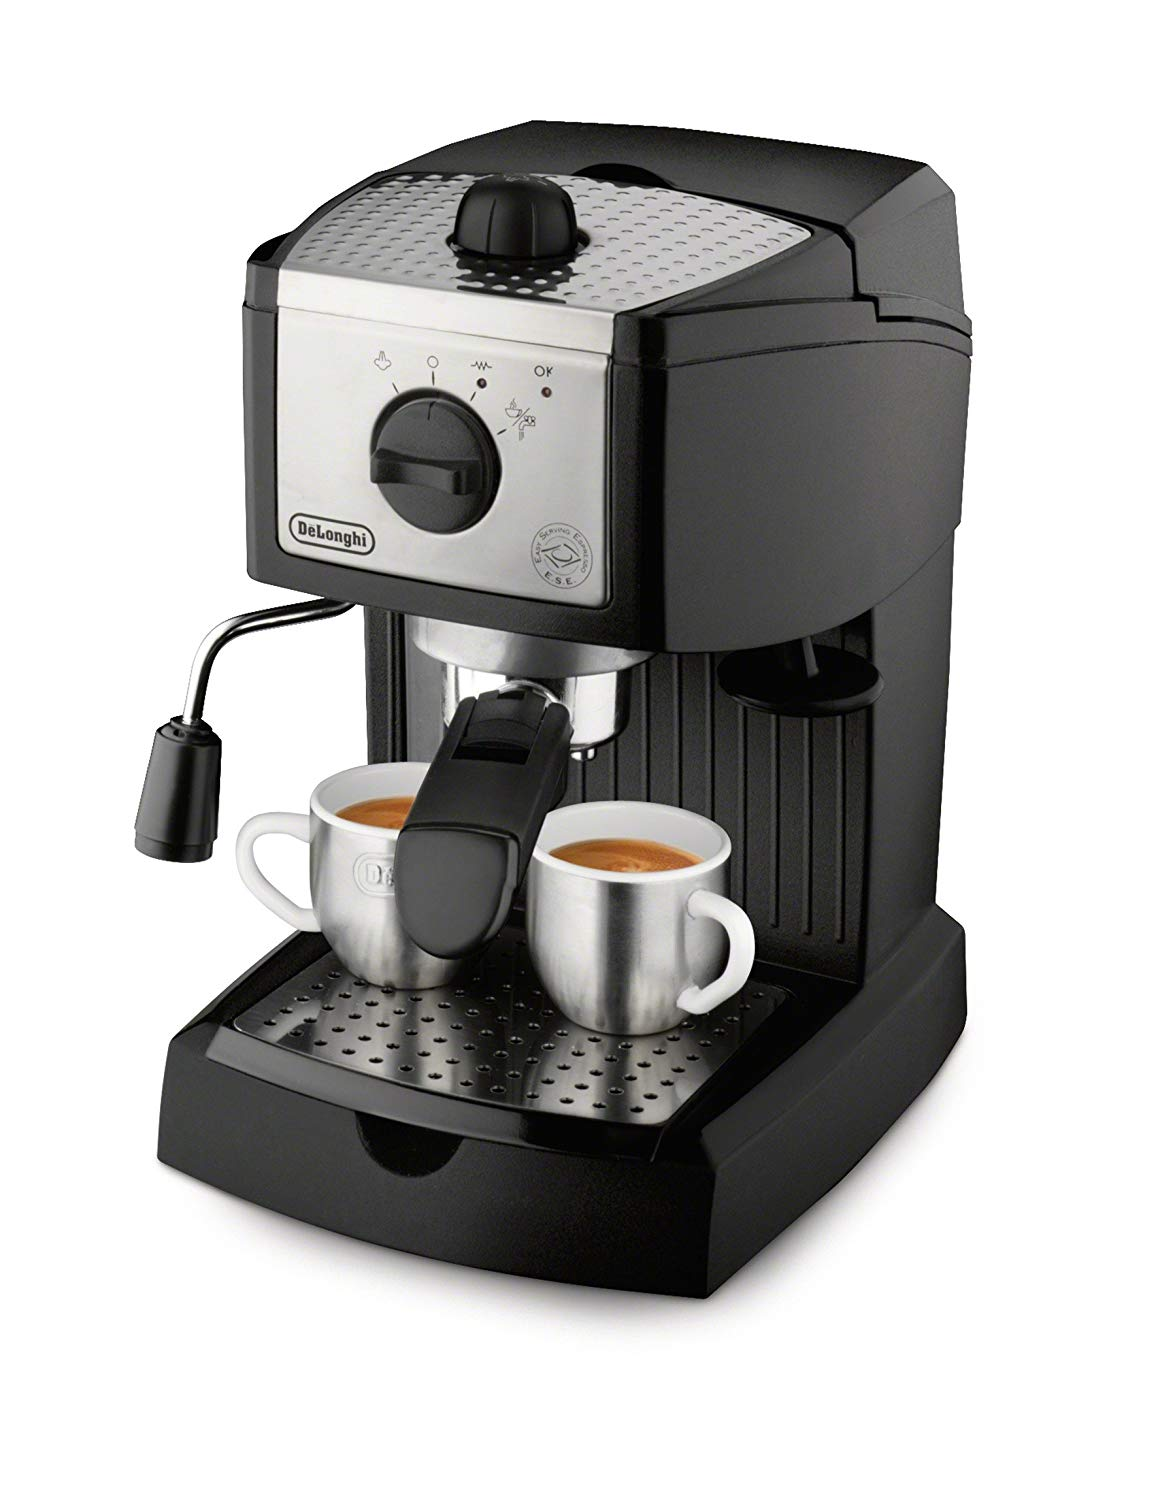 De'Longhi EC155 15-Bar Pump Cappuccino Maker & Espresso Machine